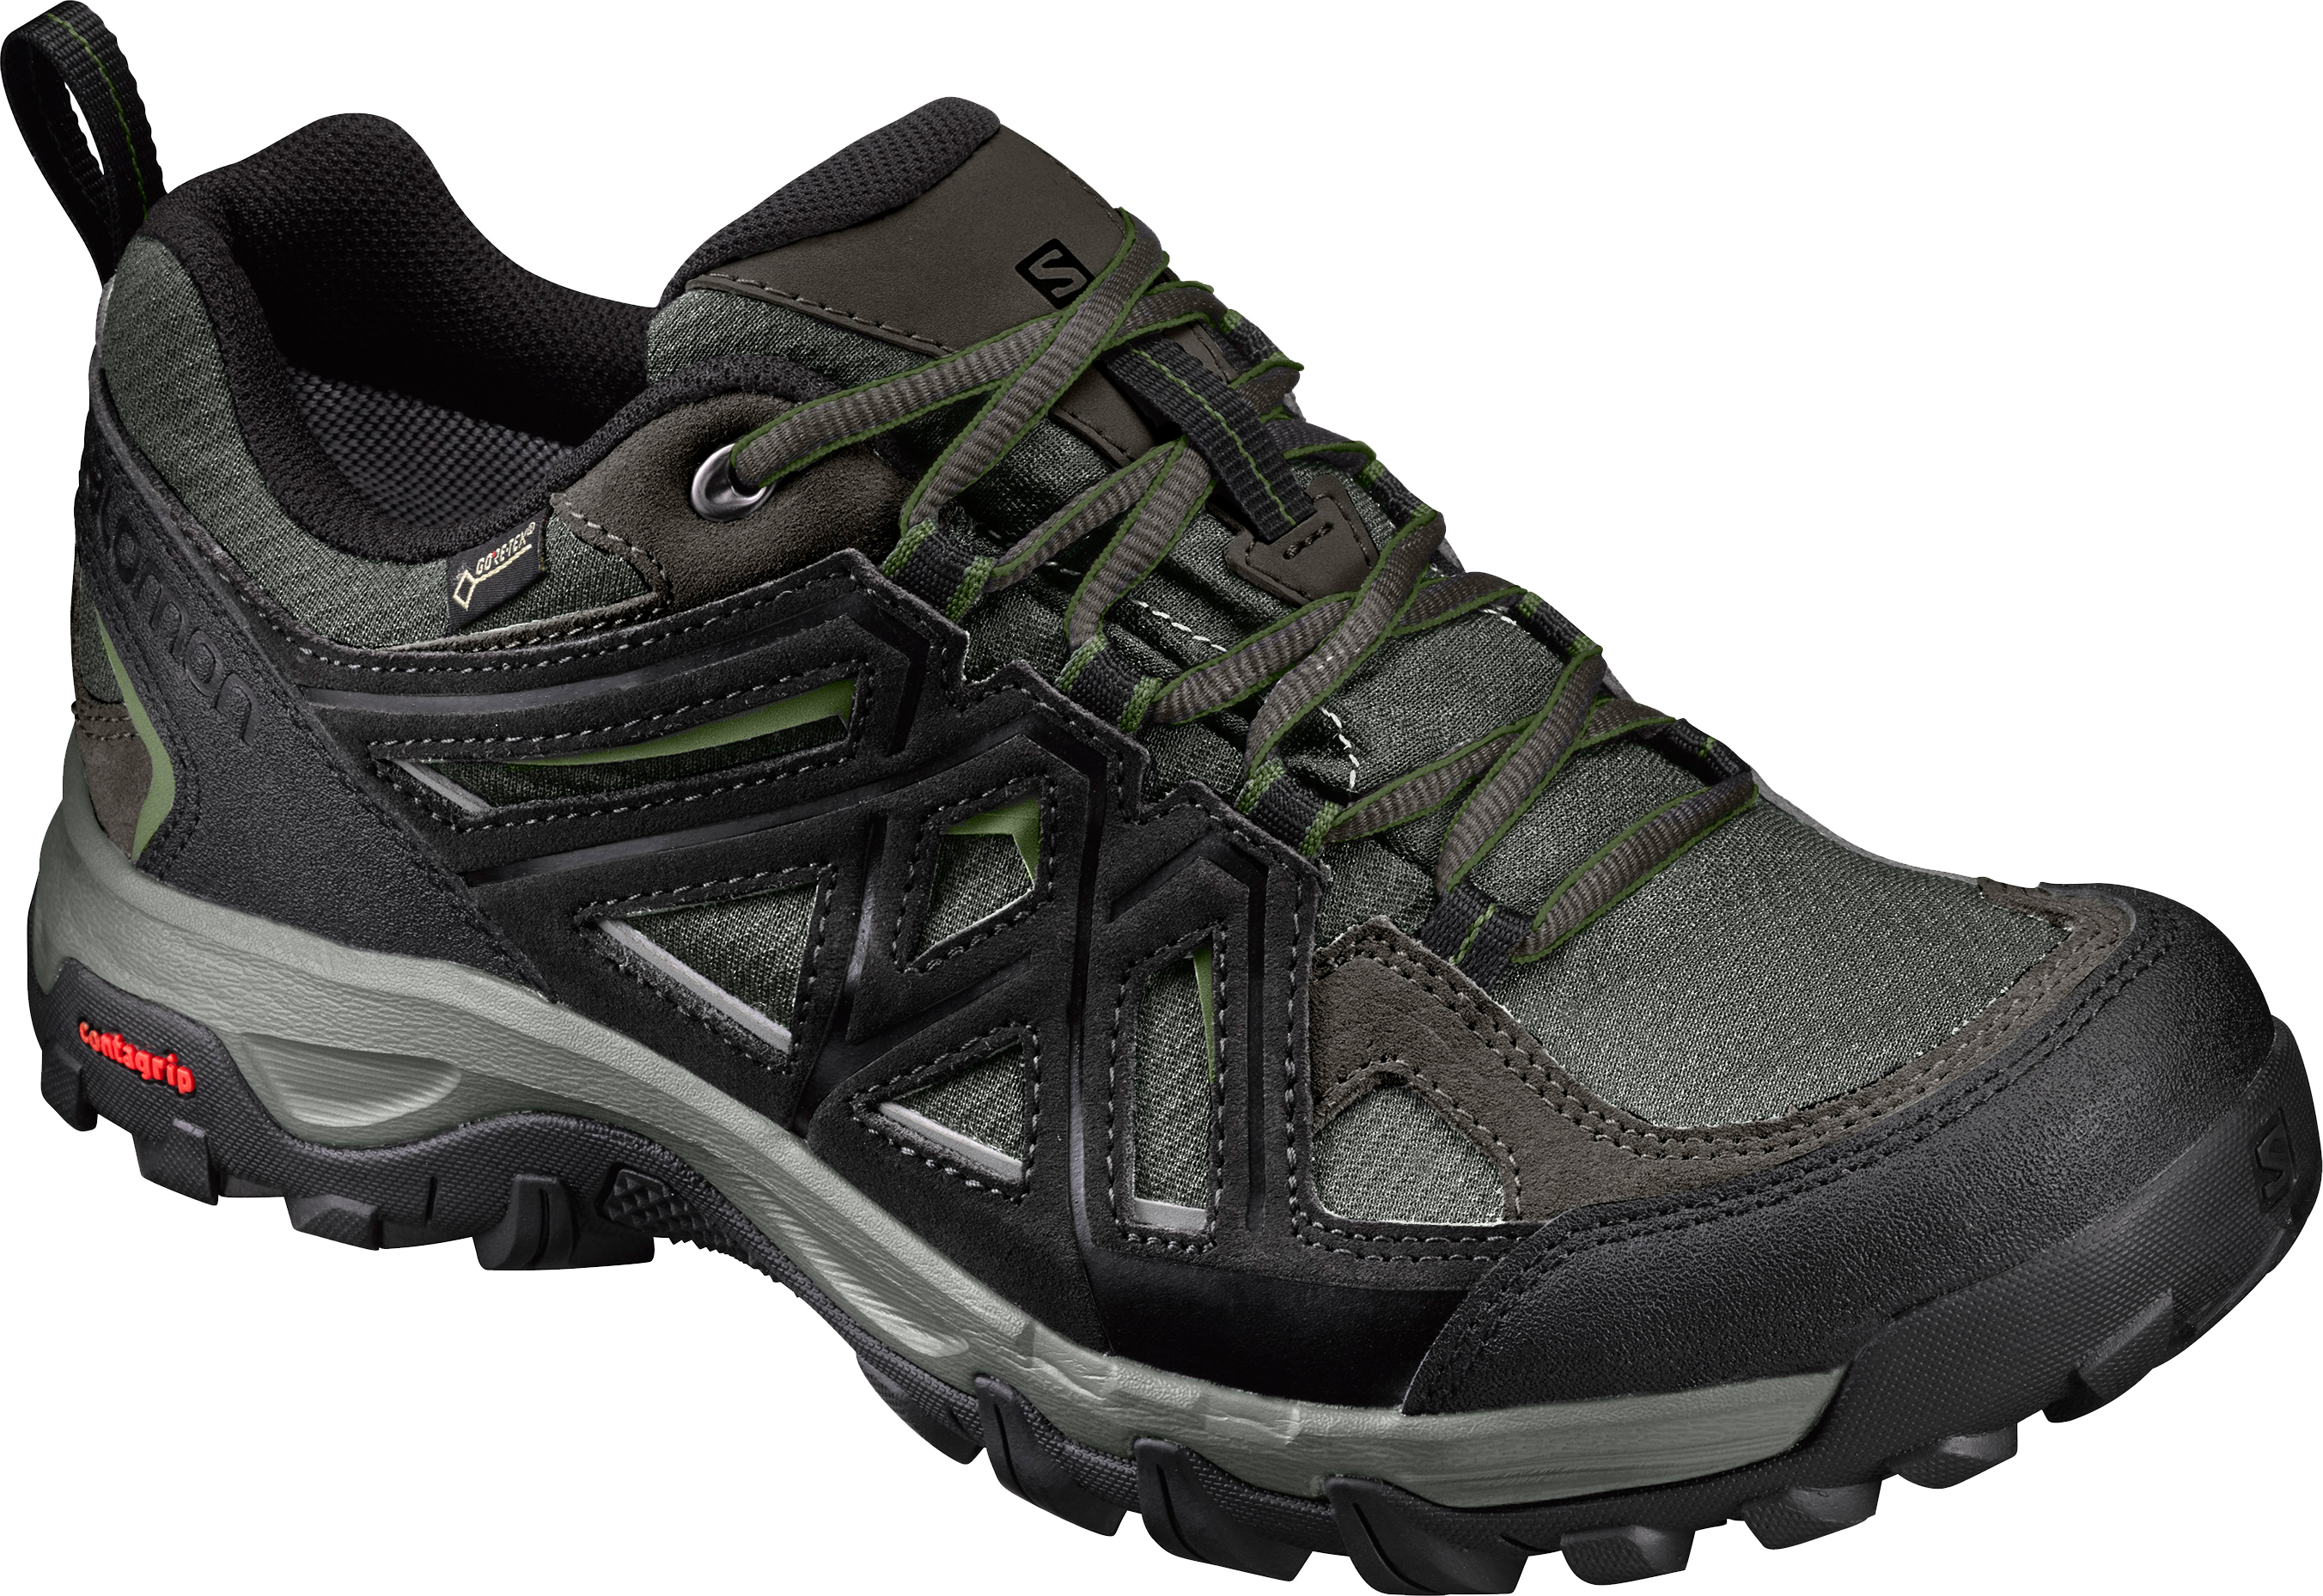 5c1ecfebc6f0 Salomon Evasion 2 GTX Light Trail Shoes - Men s